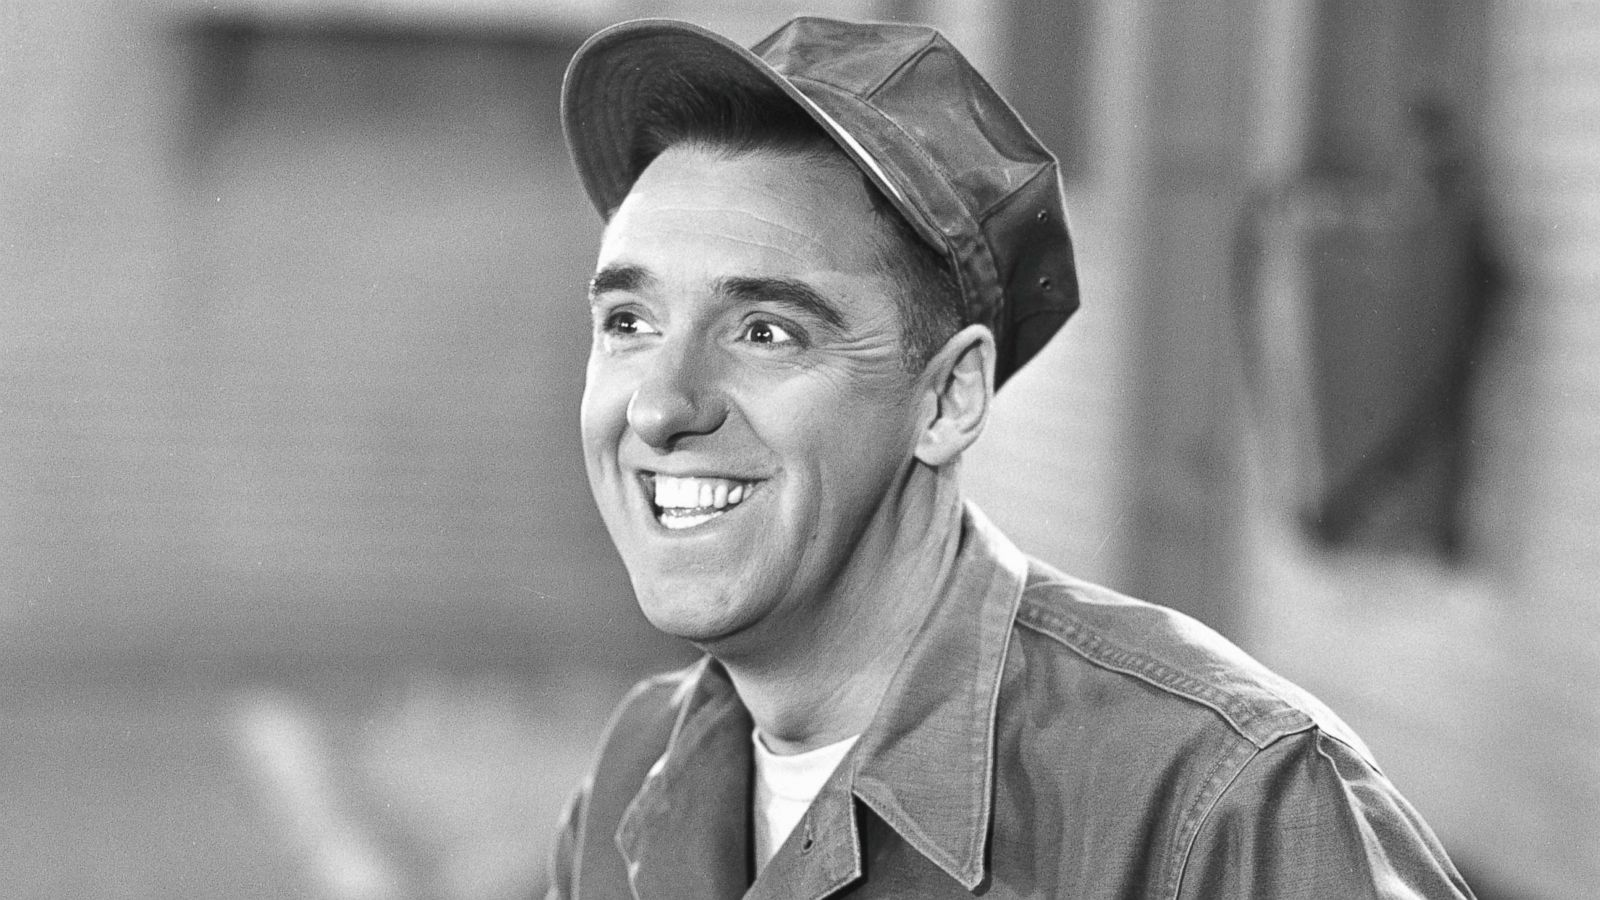 from Luis gay jim nabors